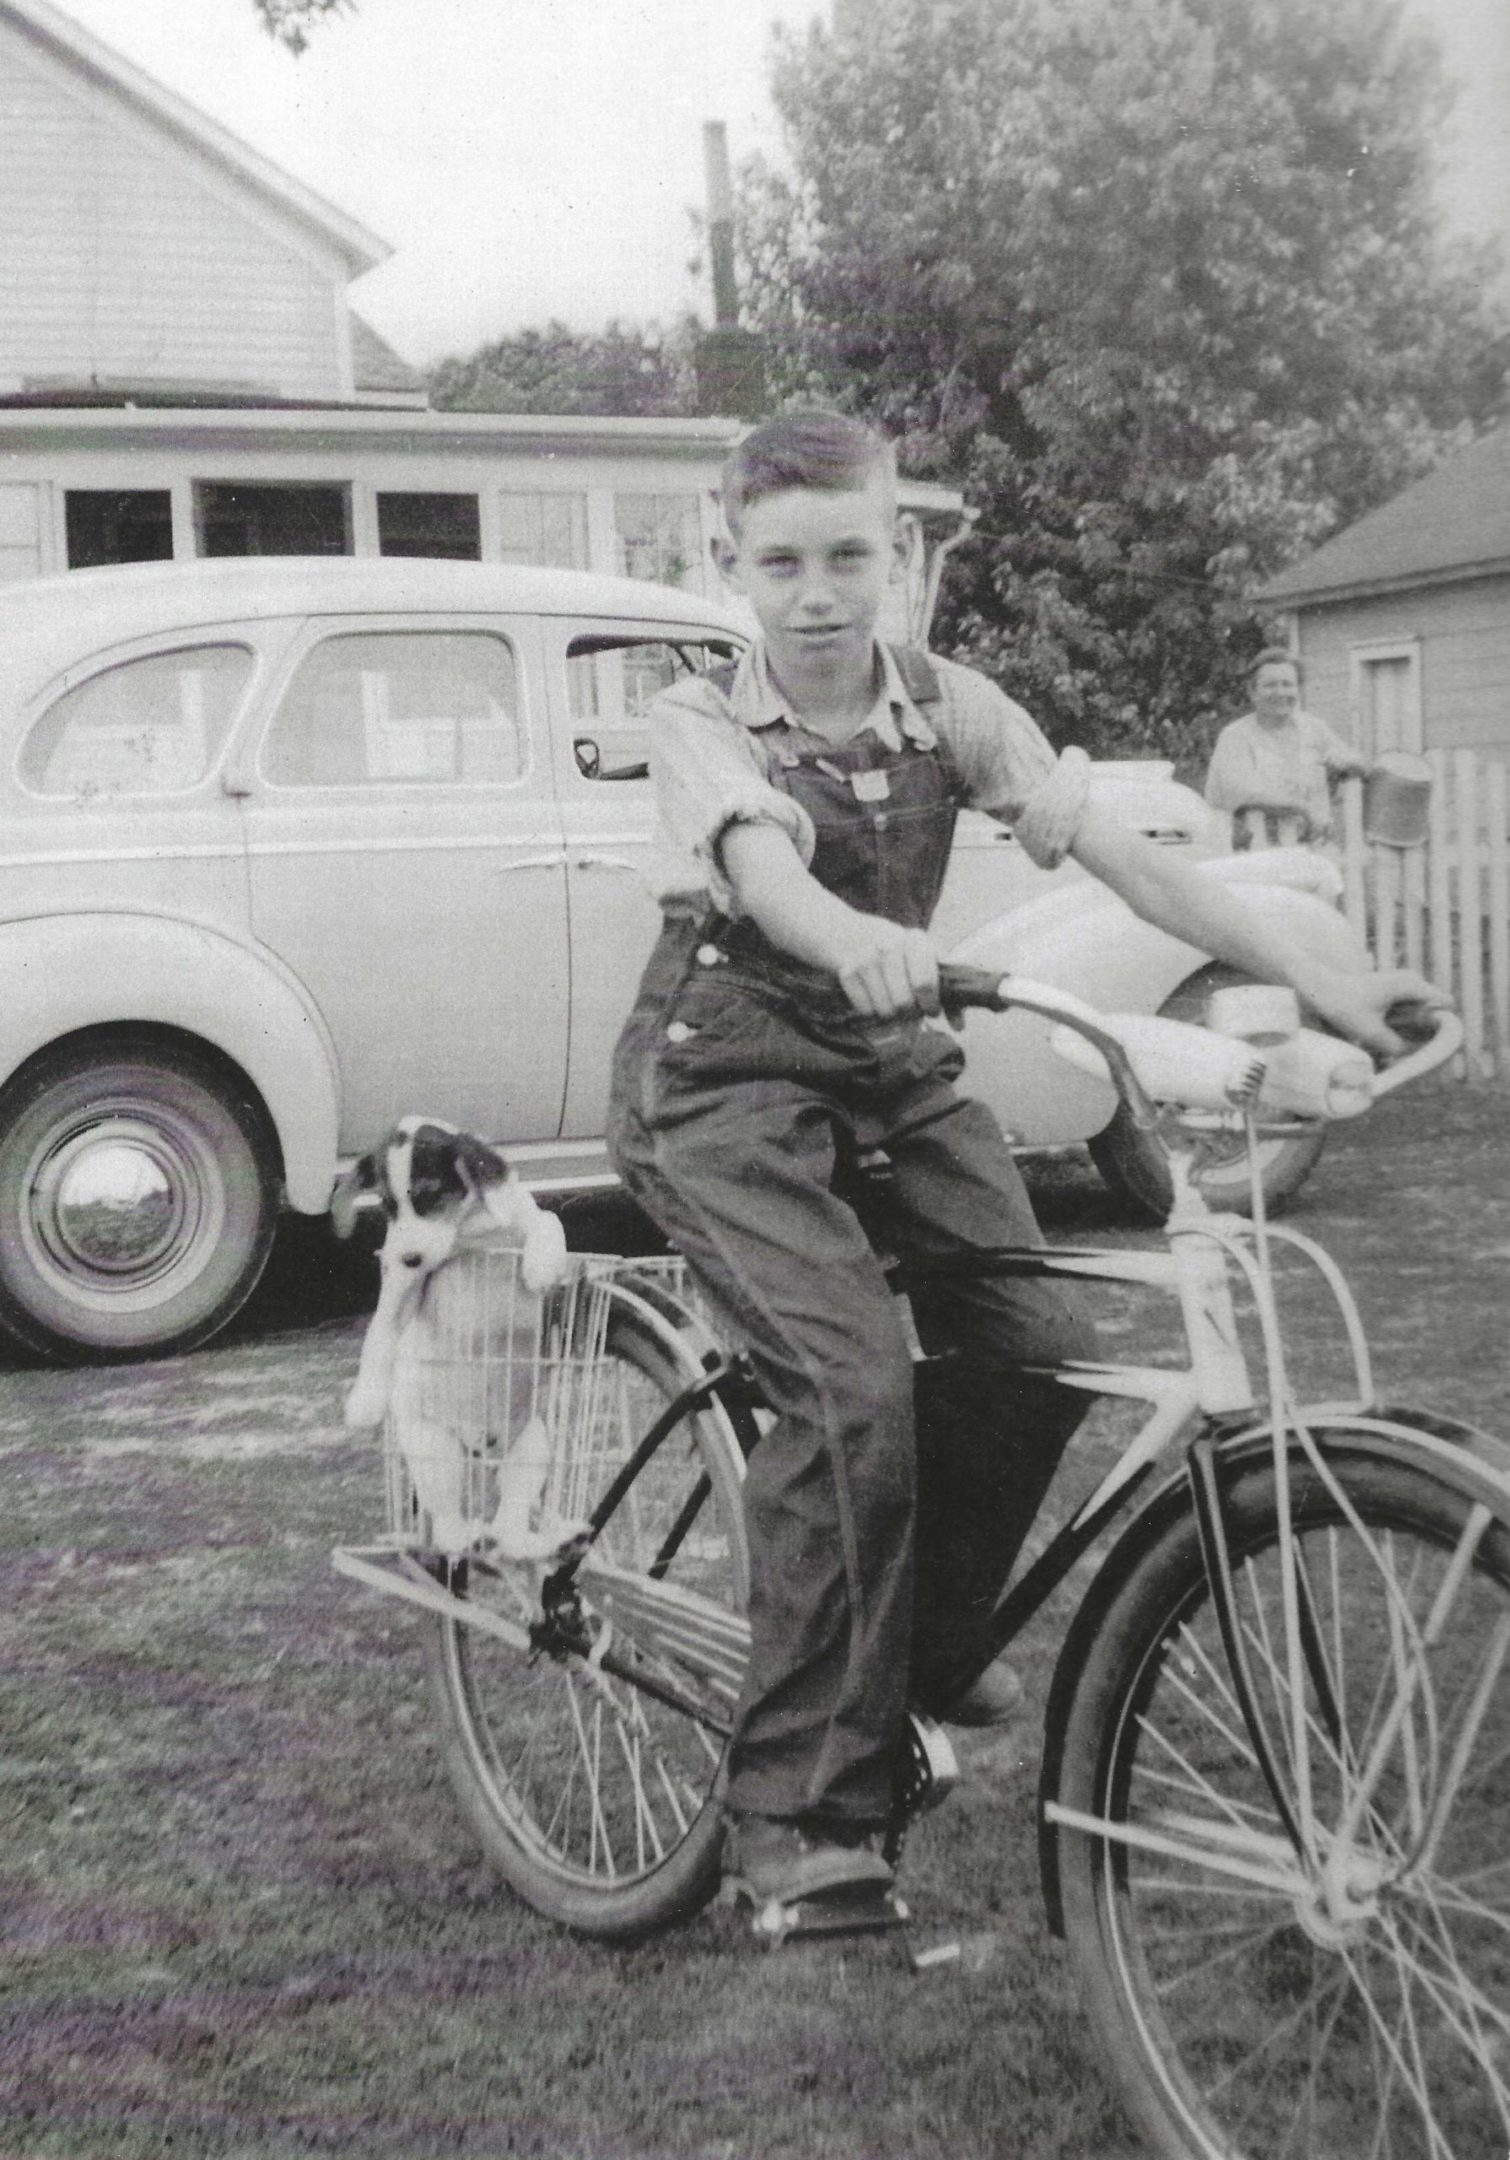 Photo of Bill Connel on bike